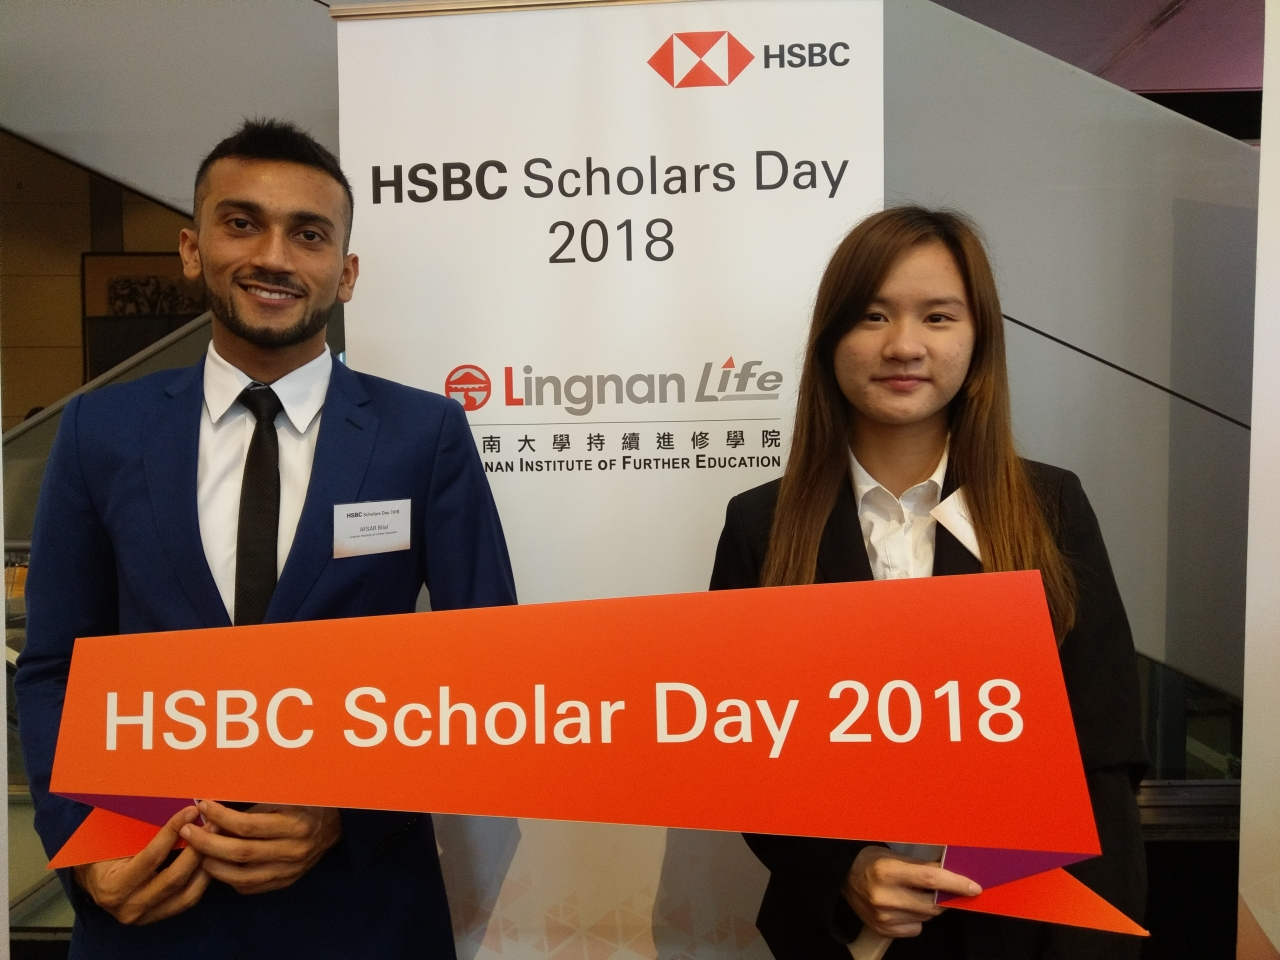 HSBC-Scholars-Day-2018 - Lingnan Institute of Further Education